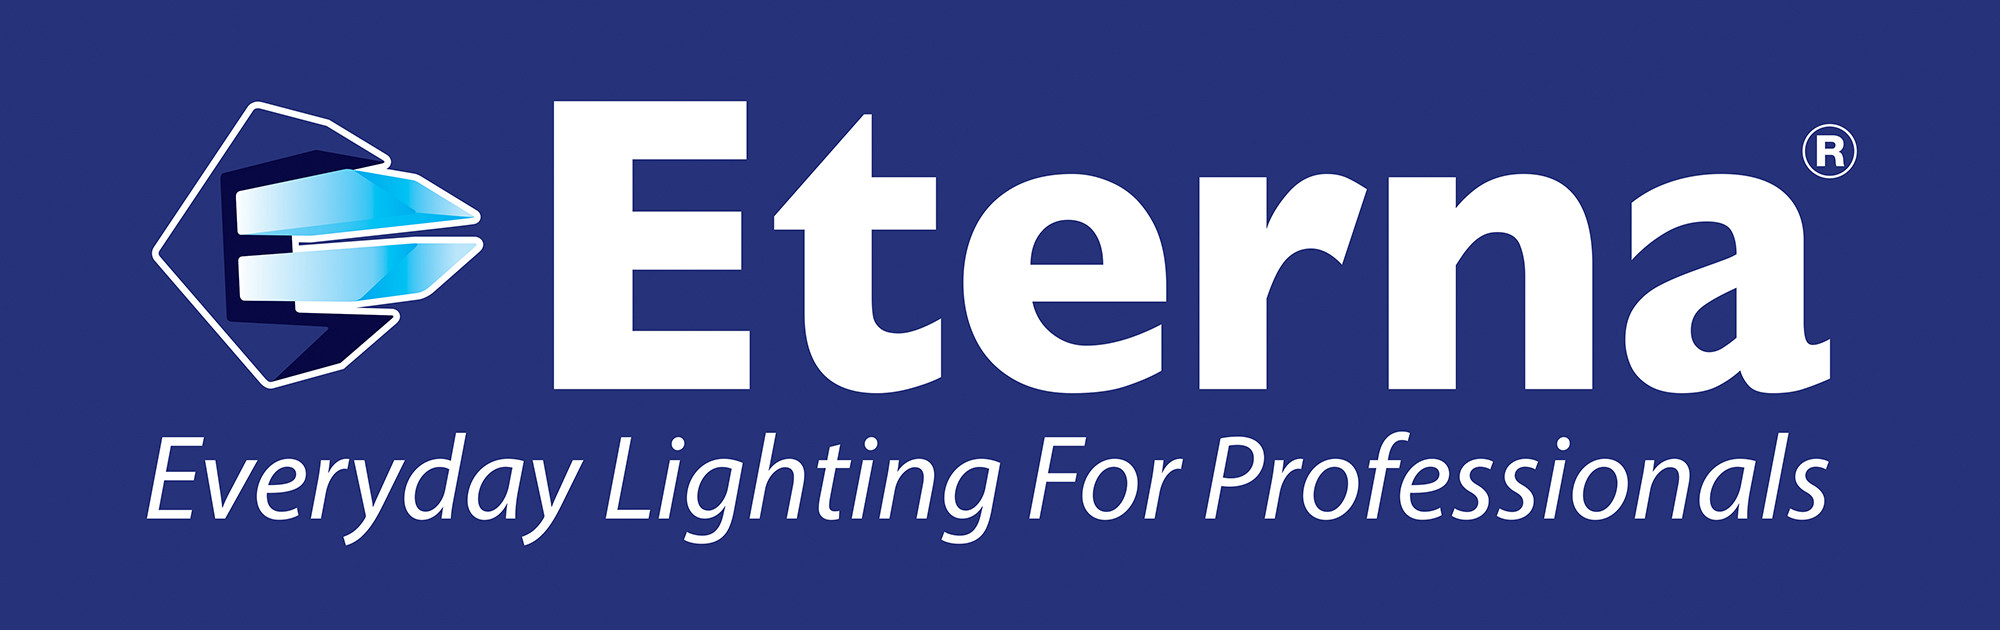 ETERNA logo 2016 FINAL on bkgrnd.jpg